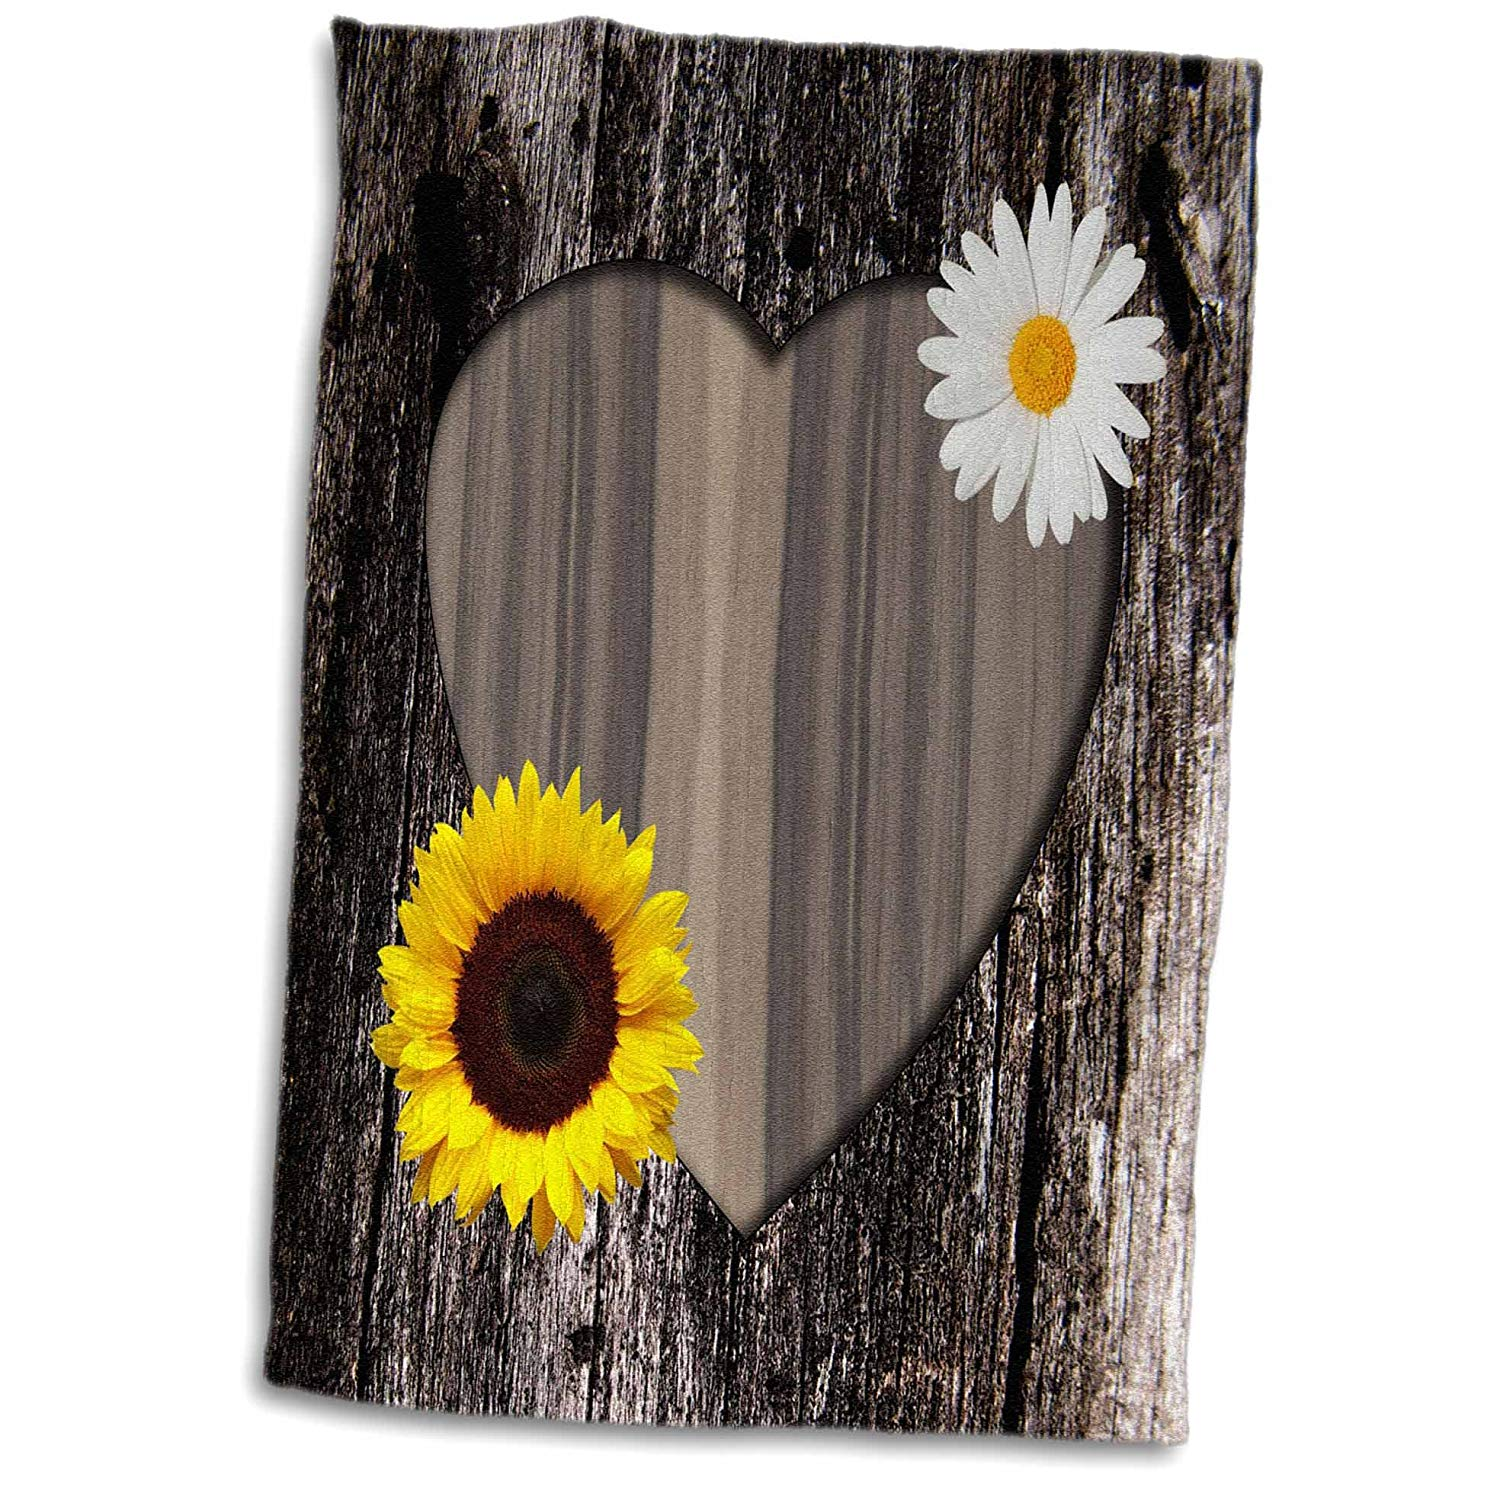 3dRose Janna Salak Designs Rustic Designs - Wood Image Heart with Sunflower and Daisy - 15x22 Hand Towel (twl_181828_1)